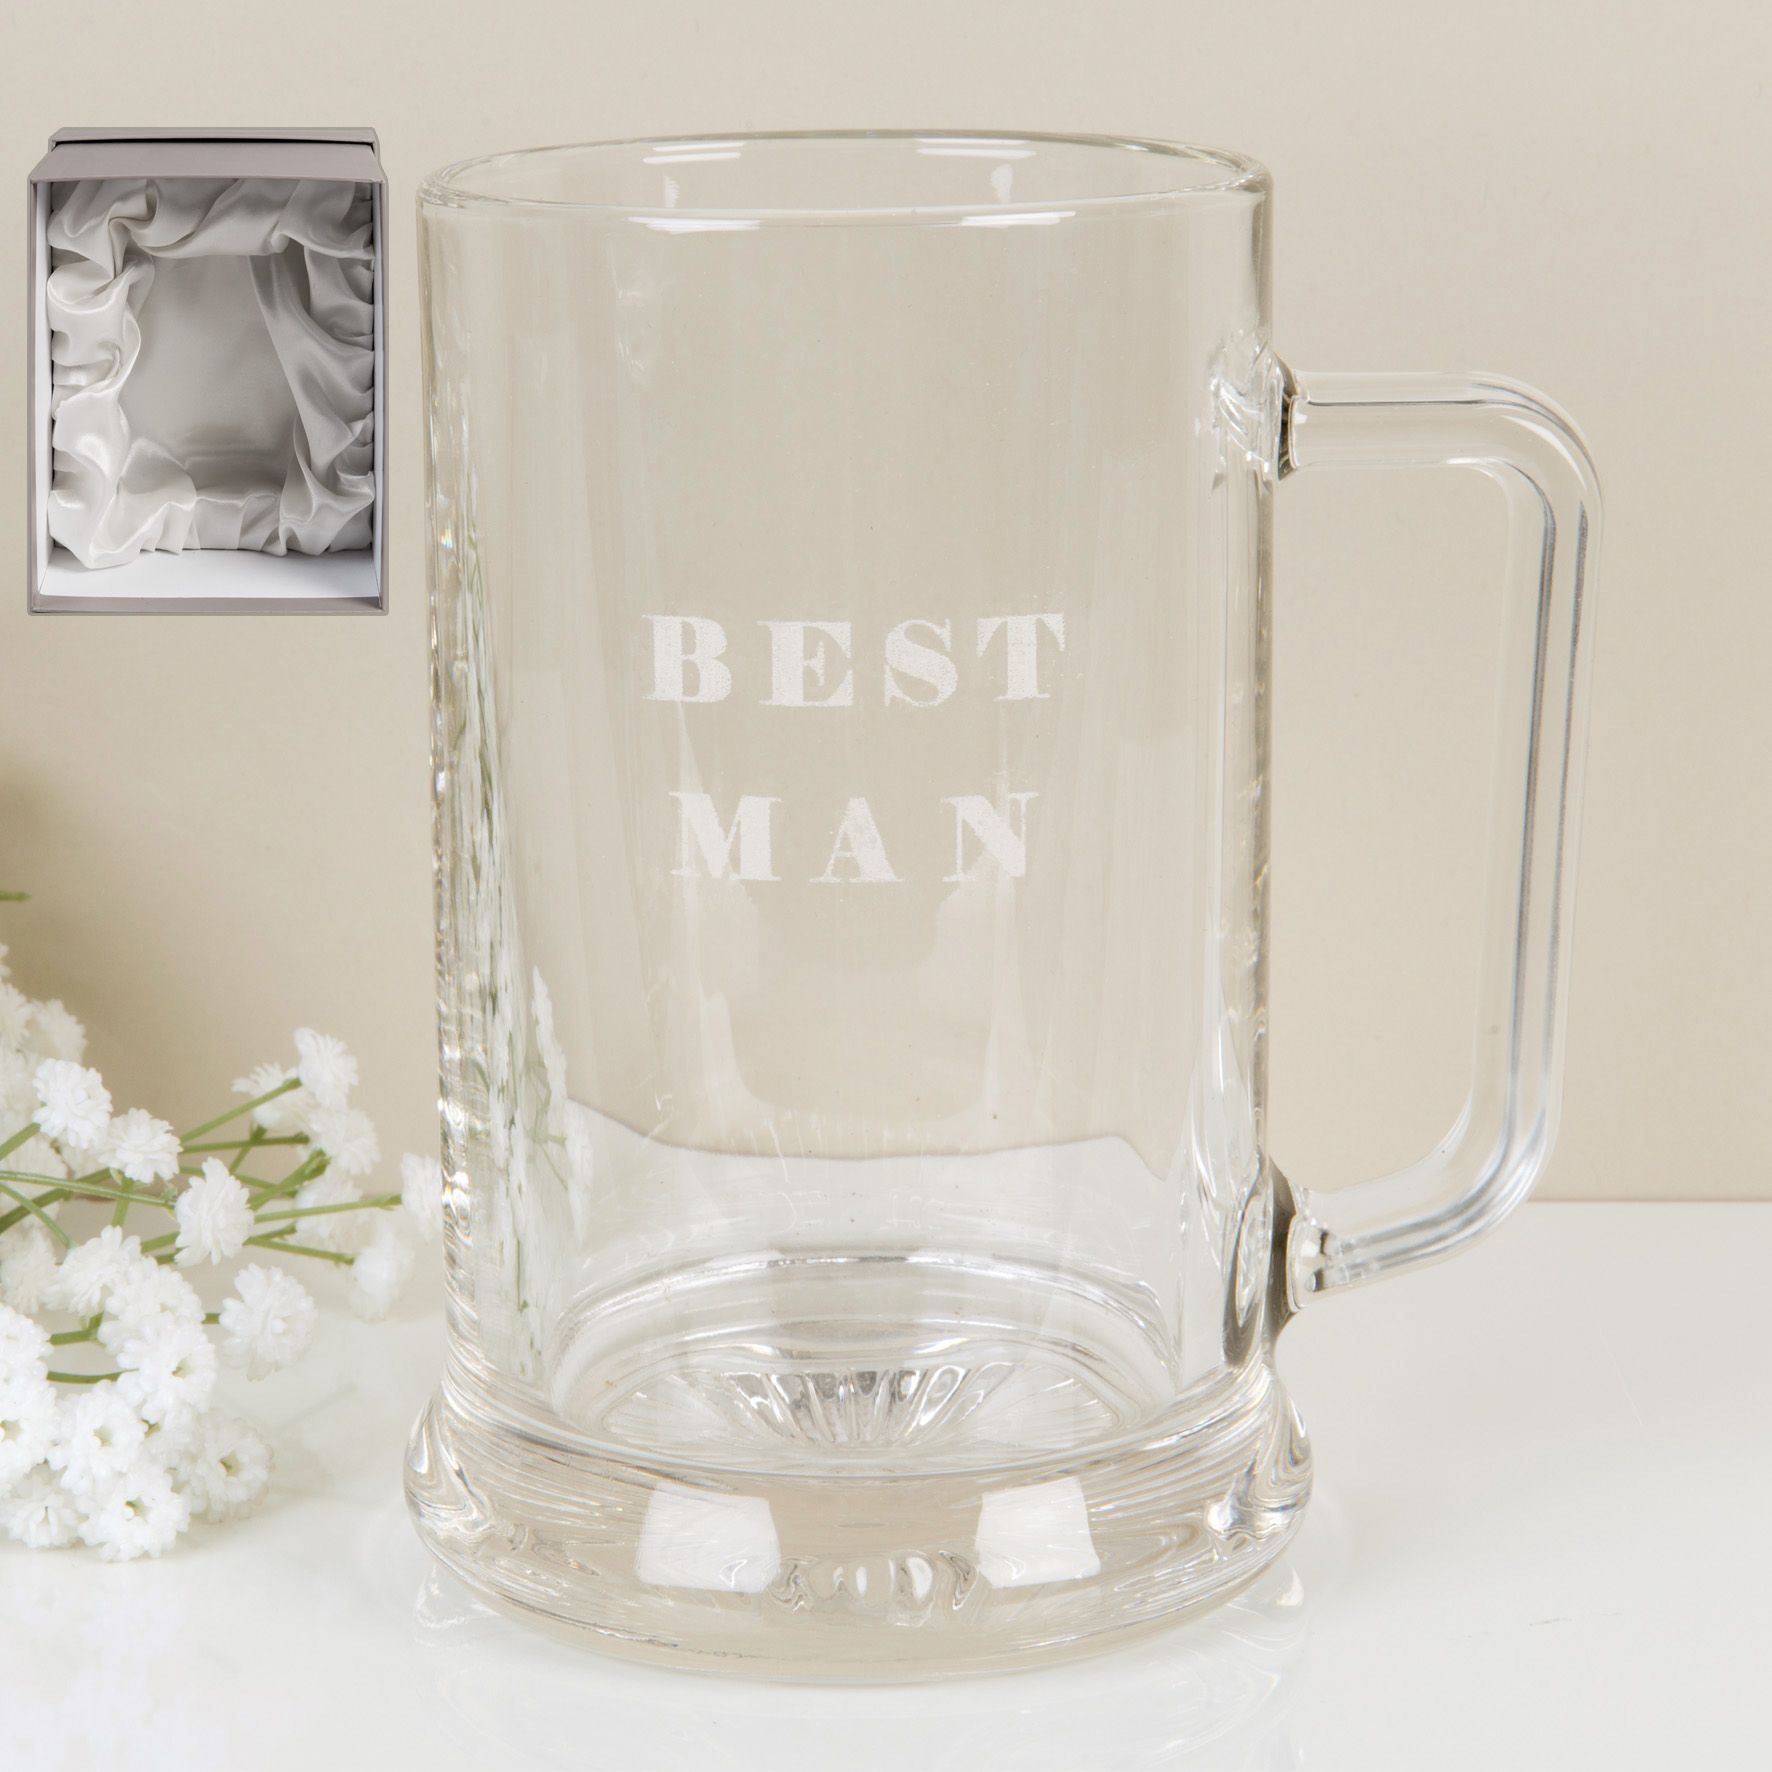 A glass pint tankard with laser etched 'Best Man' design from the Amore Bridal Party Collection. This sleek and stylish glass tankard is presented in an ivory satin-lined gift box. The perfect way to thank your best friend for his help on your big day. Suitable for further personalisation.